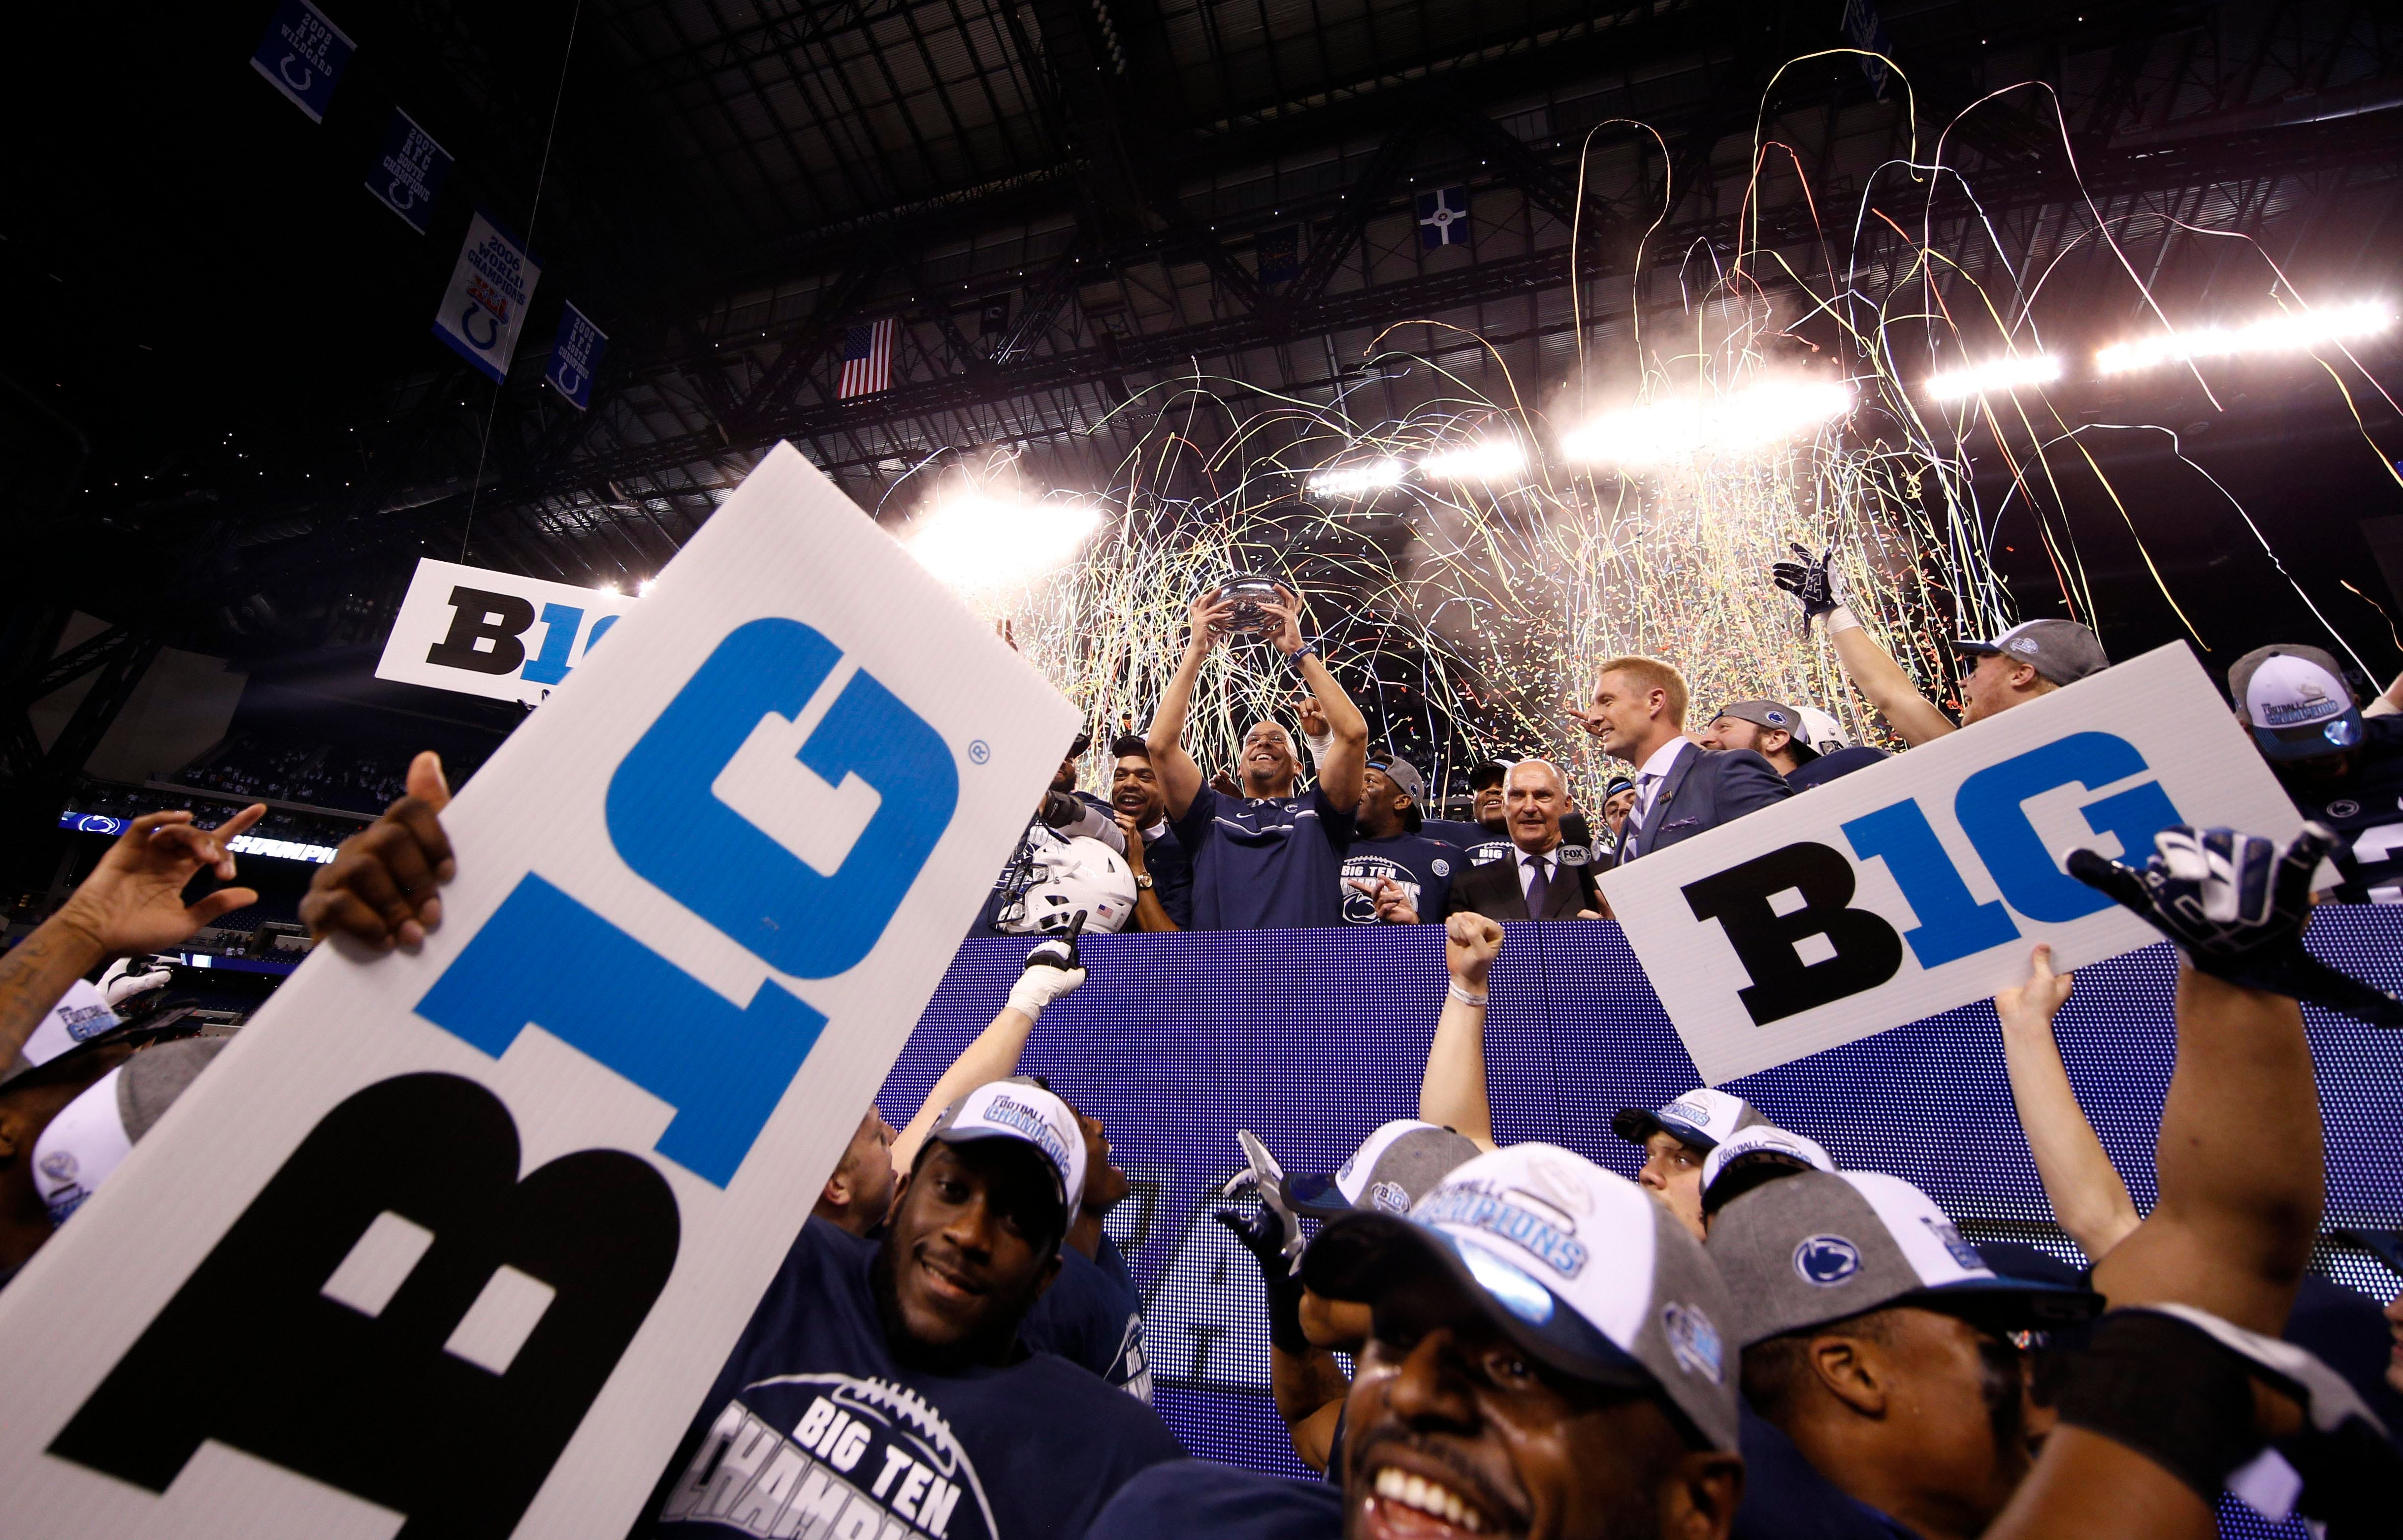 Opinion: Big Ten got played by President Trump, and White House is eager to celebrate